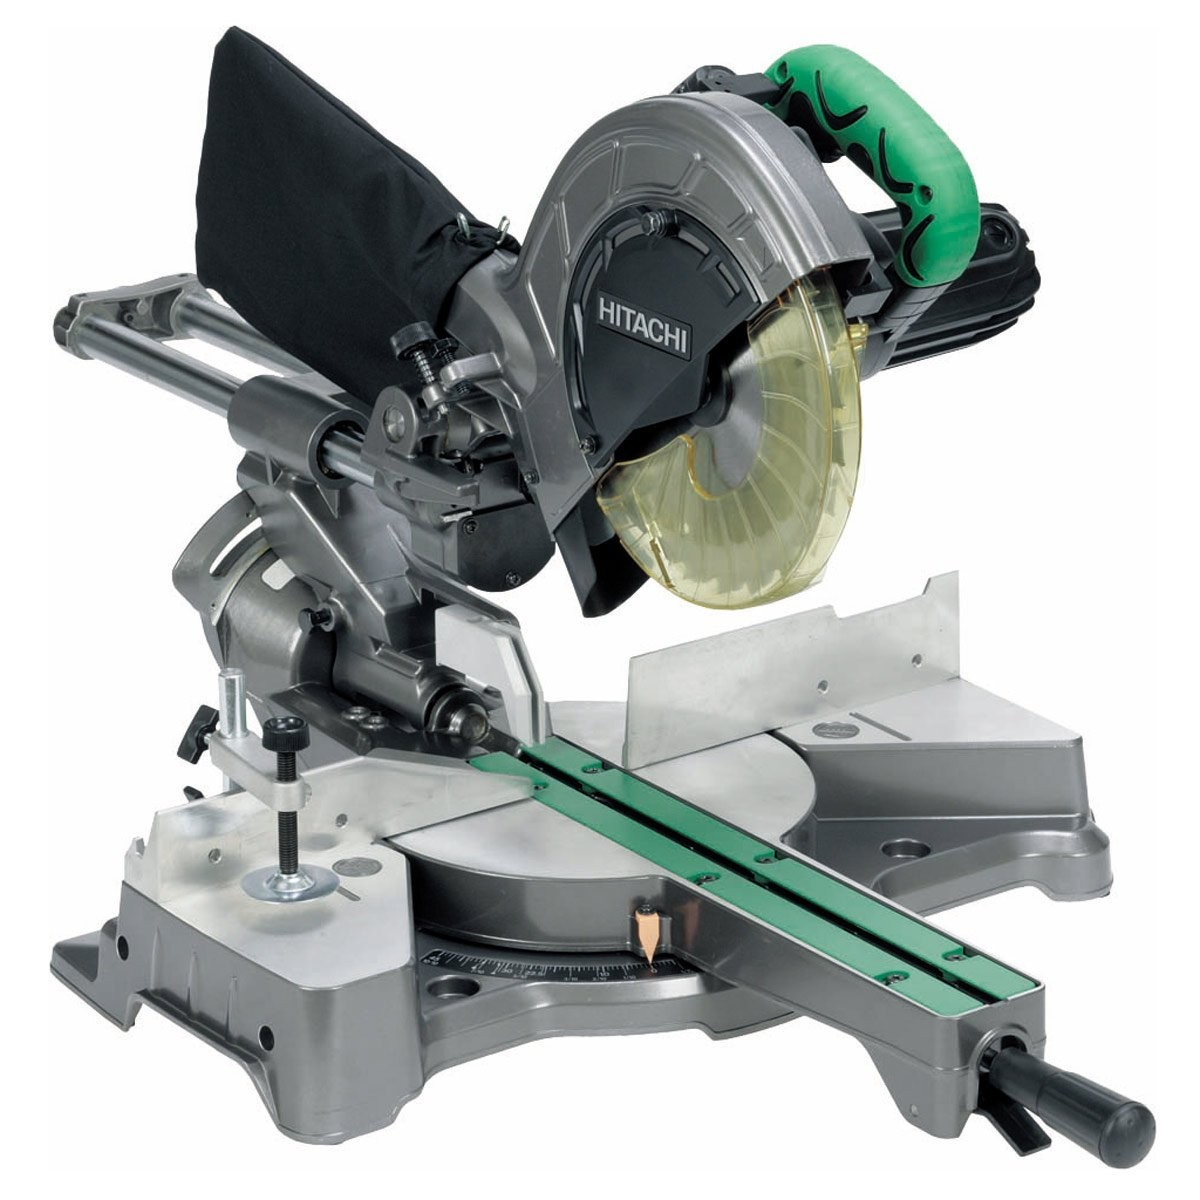 Hitachi C8FSE Slide Compound Mitre Saw 216mm 1050w